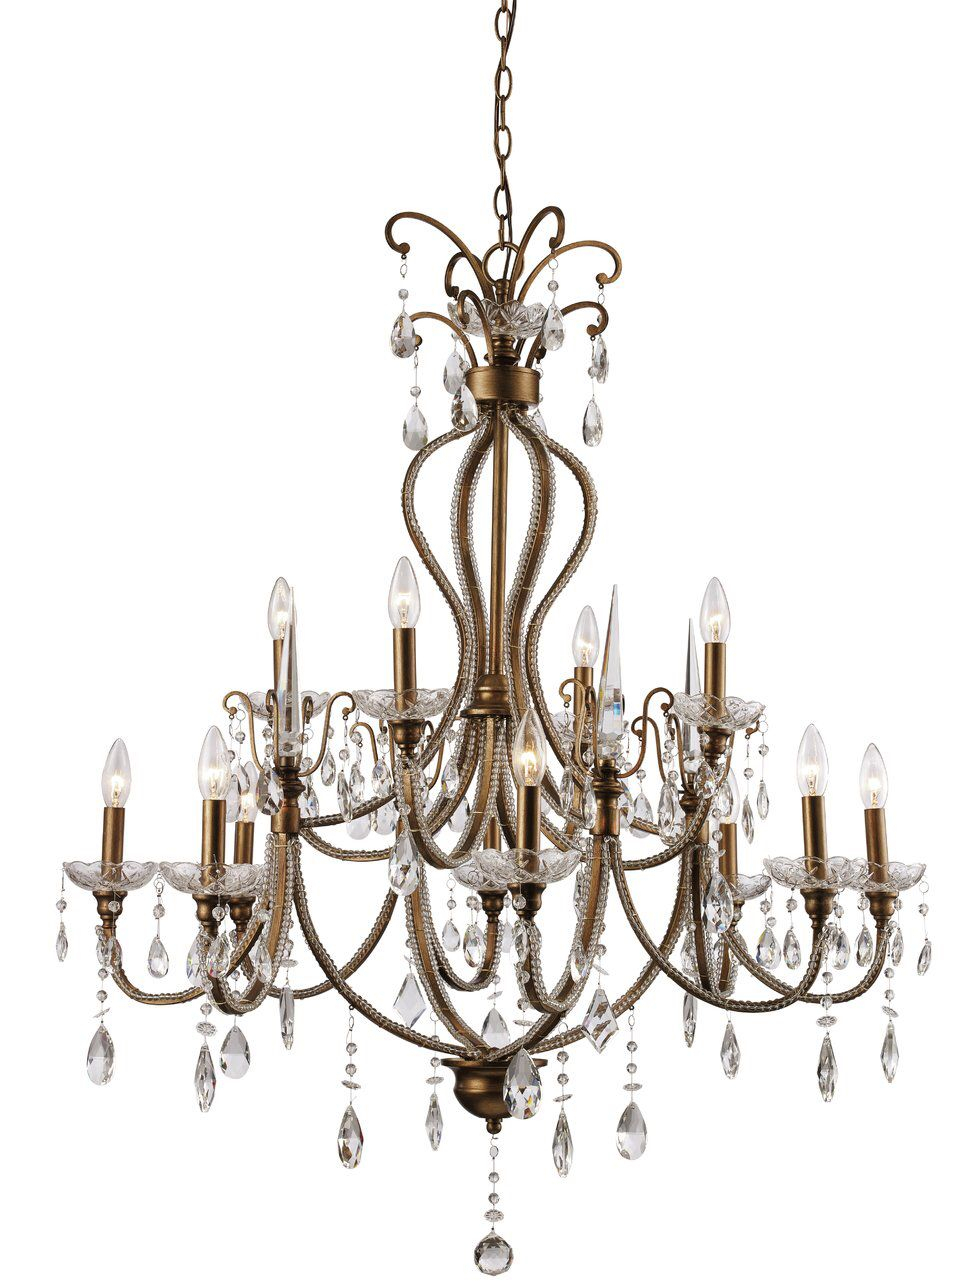 Blandford 12 Light Candle Style Chandelier   Bayou Blvd Throughout Hesse 5 Light Candle Style Chandeliers (View 20 of 30)